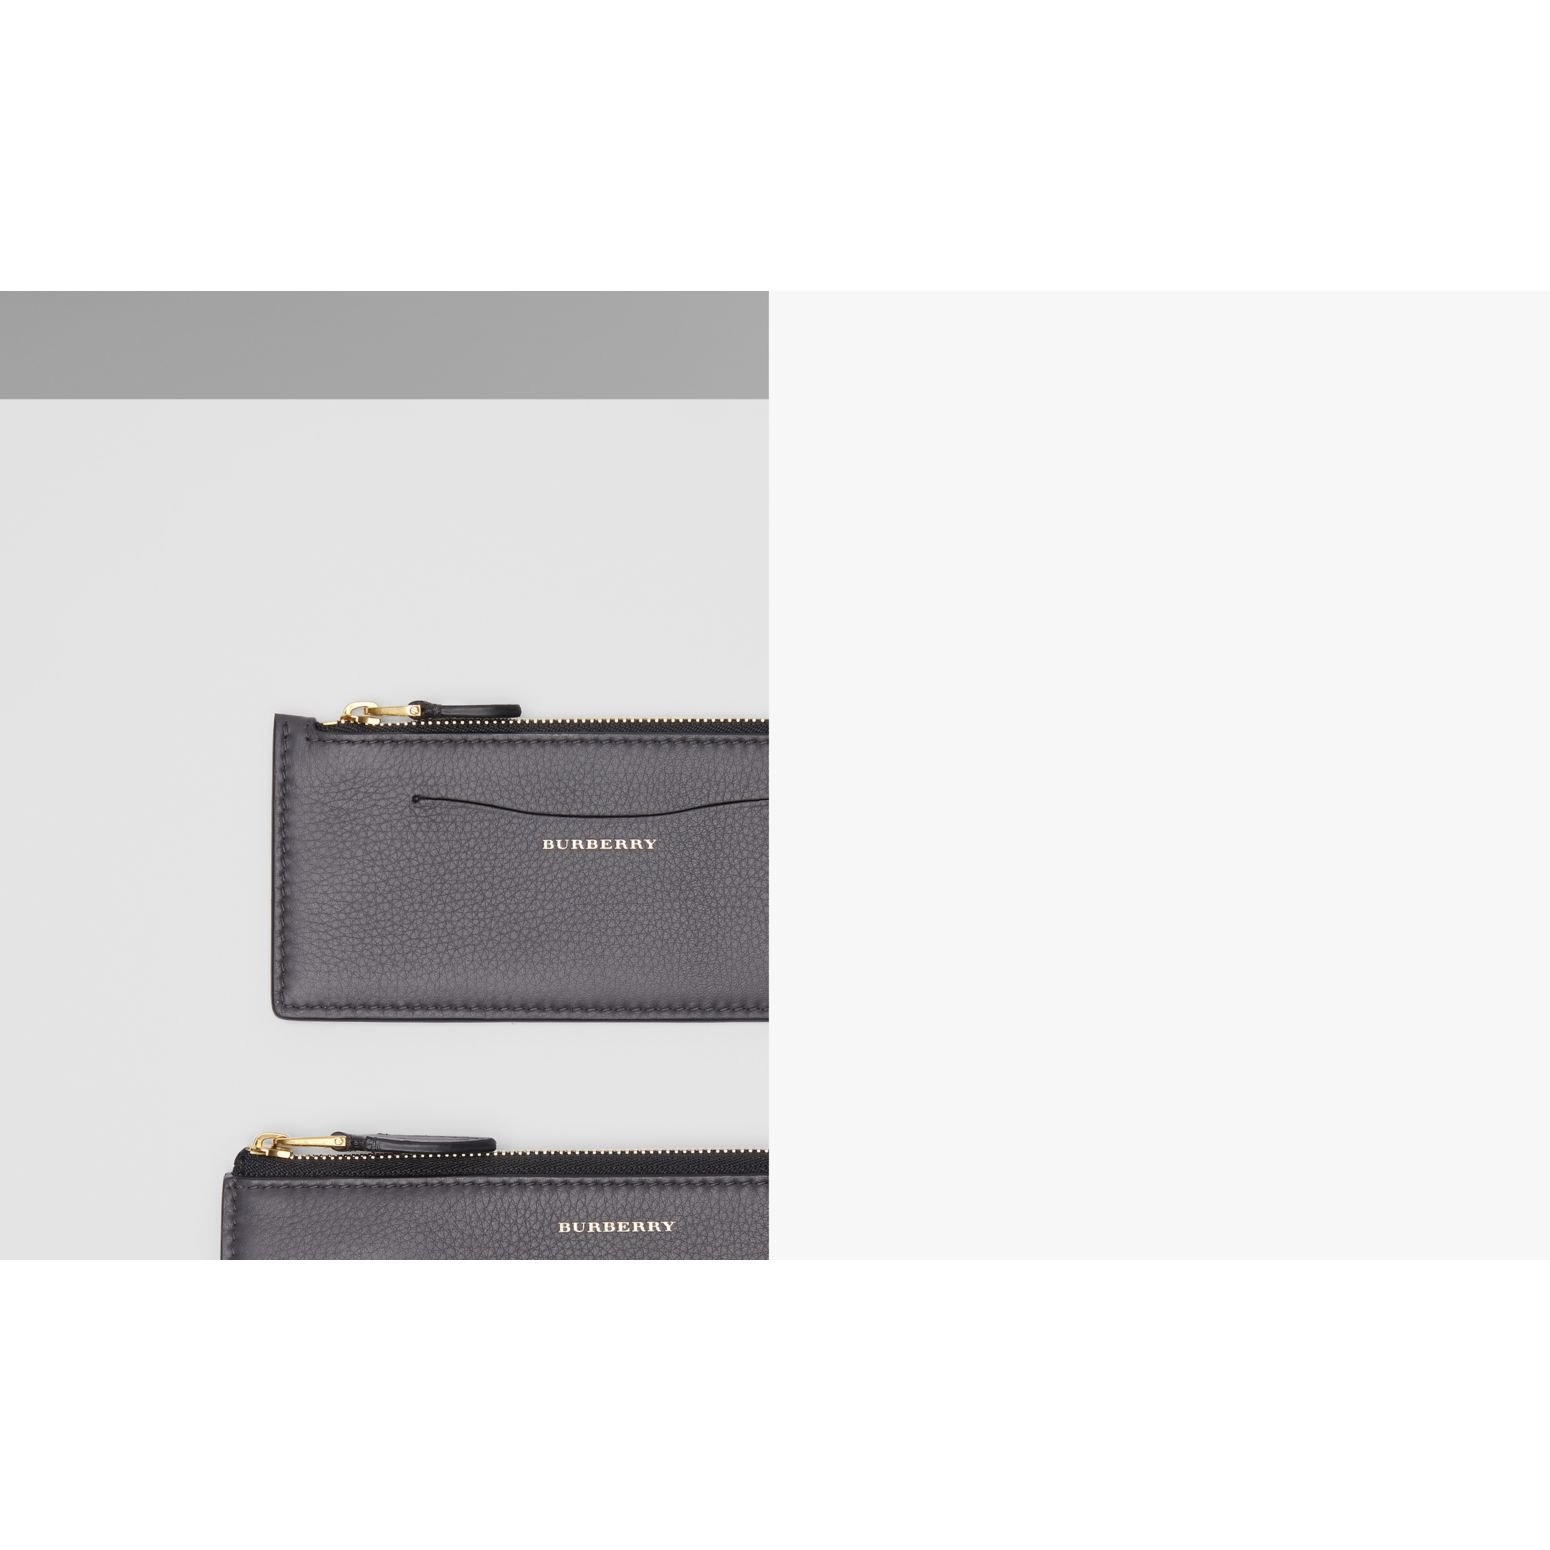 Two-tone Leather Ziparound Wallet and Coin Case in Charcoal Grey - Women | Burberry United Kingdom - gallery image 1